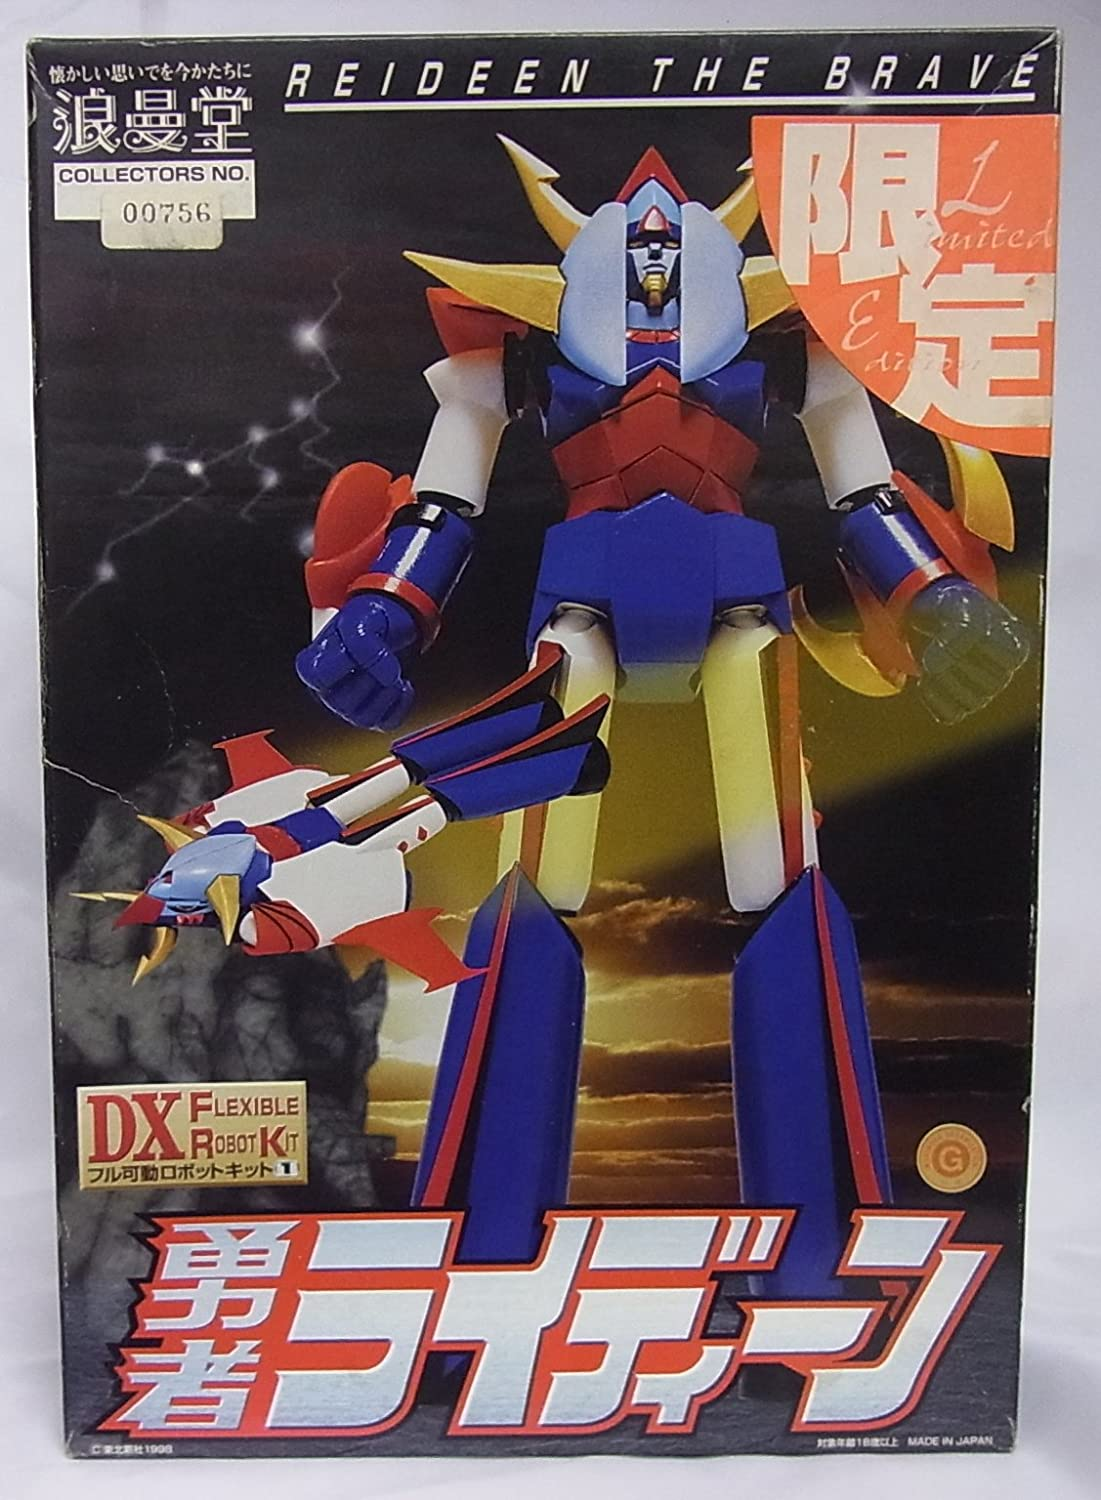 DX Flexible Robot Kit full mobile robot kit 1 Brave Raideen limited oro colore (japan import)